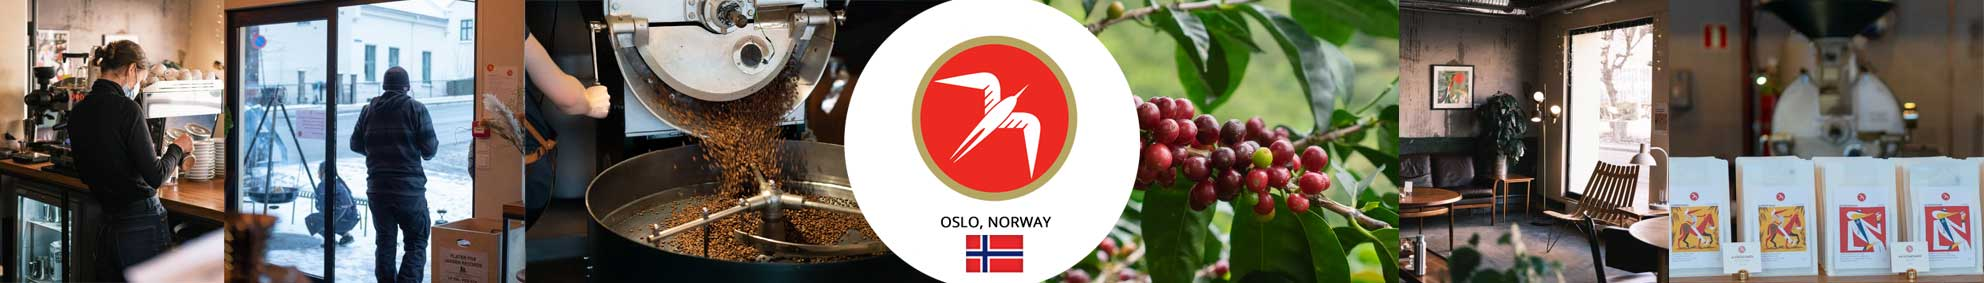 Fuglen Coffee Oslo Norway on Best Coffee Subscription UK